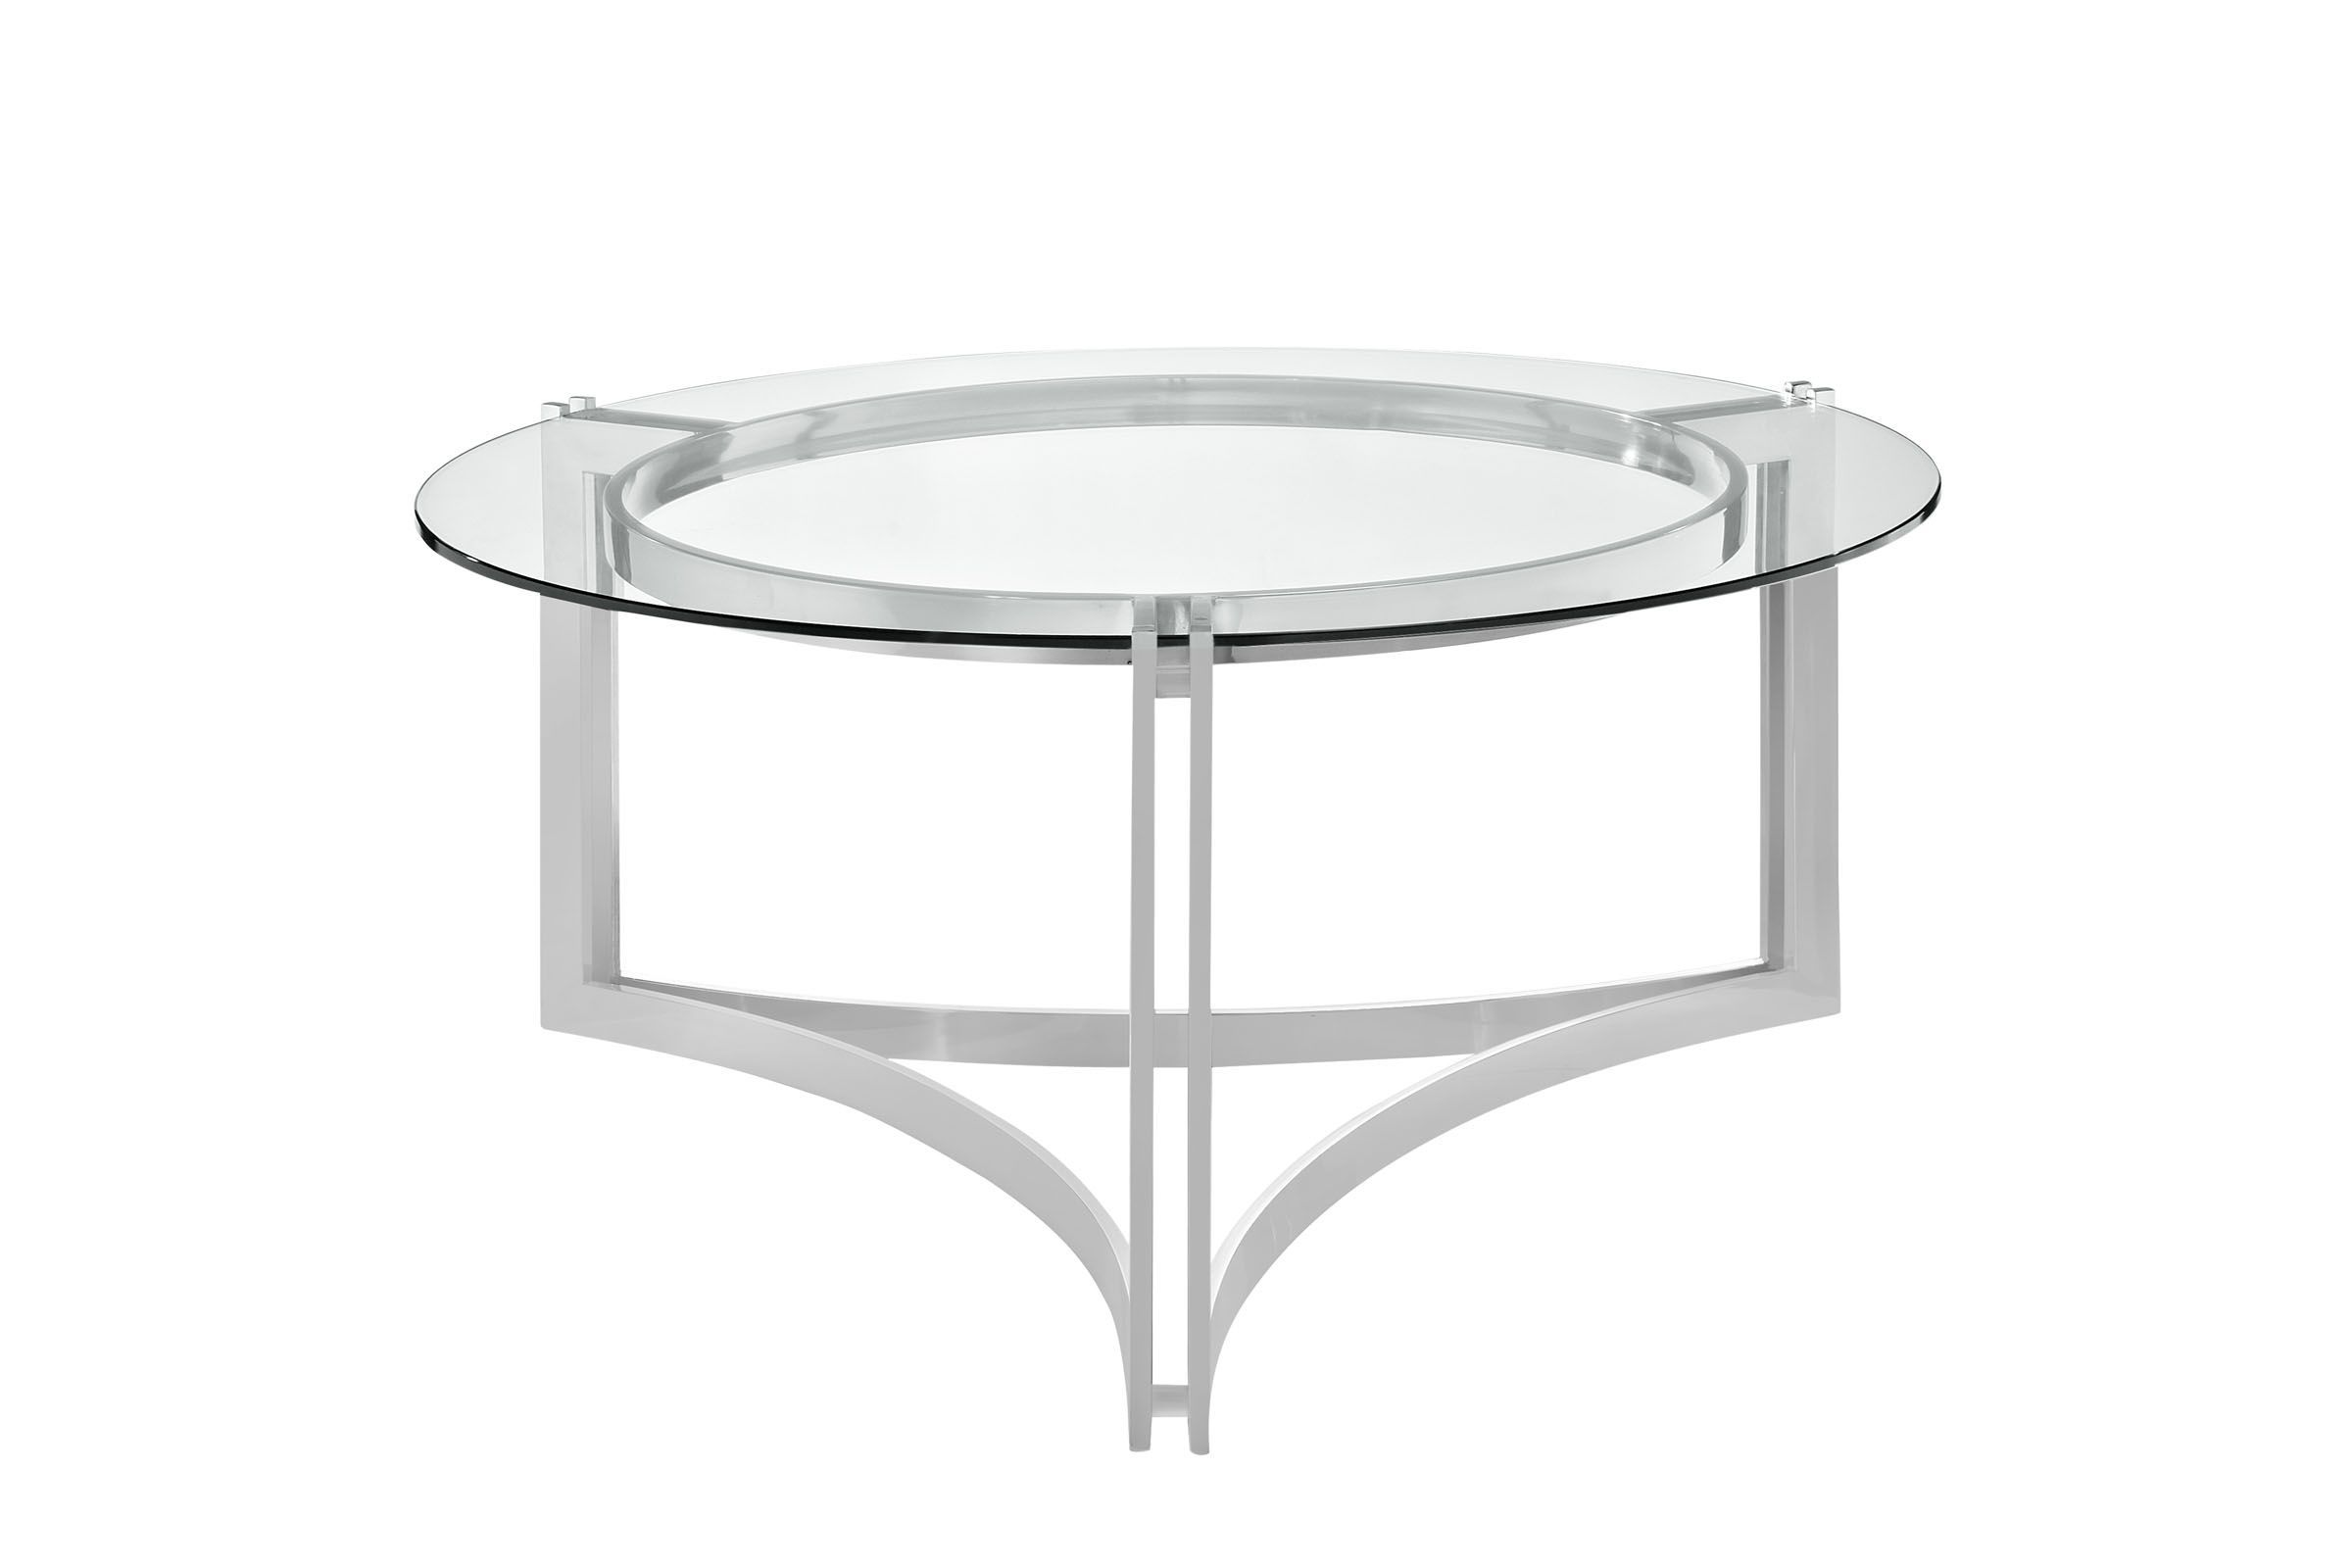 Signet Stainless Steel Coffee Table By Modway Steel Coffee Table